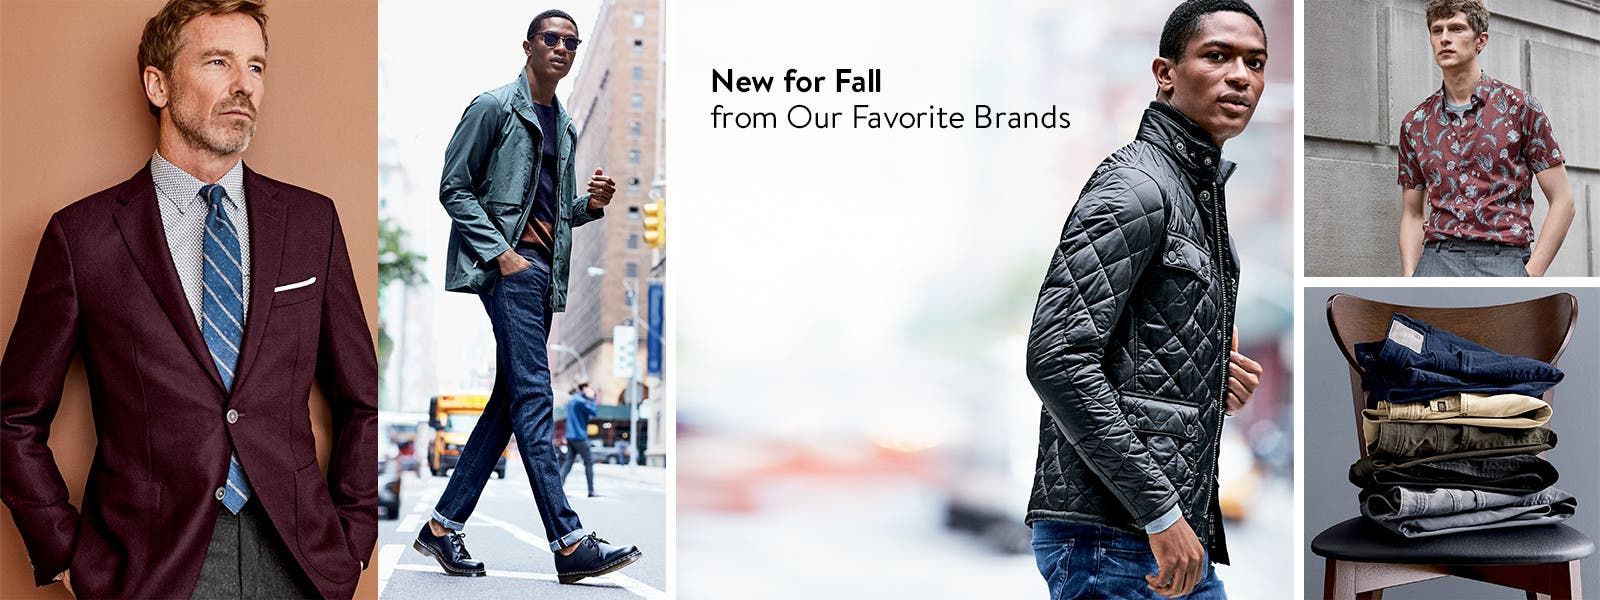 New clothing for fall from our favorite brands.